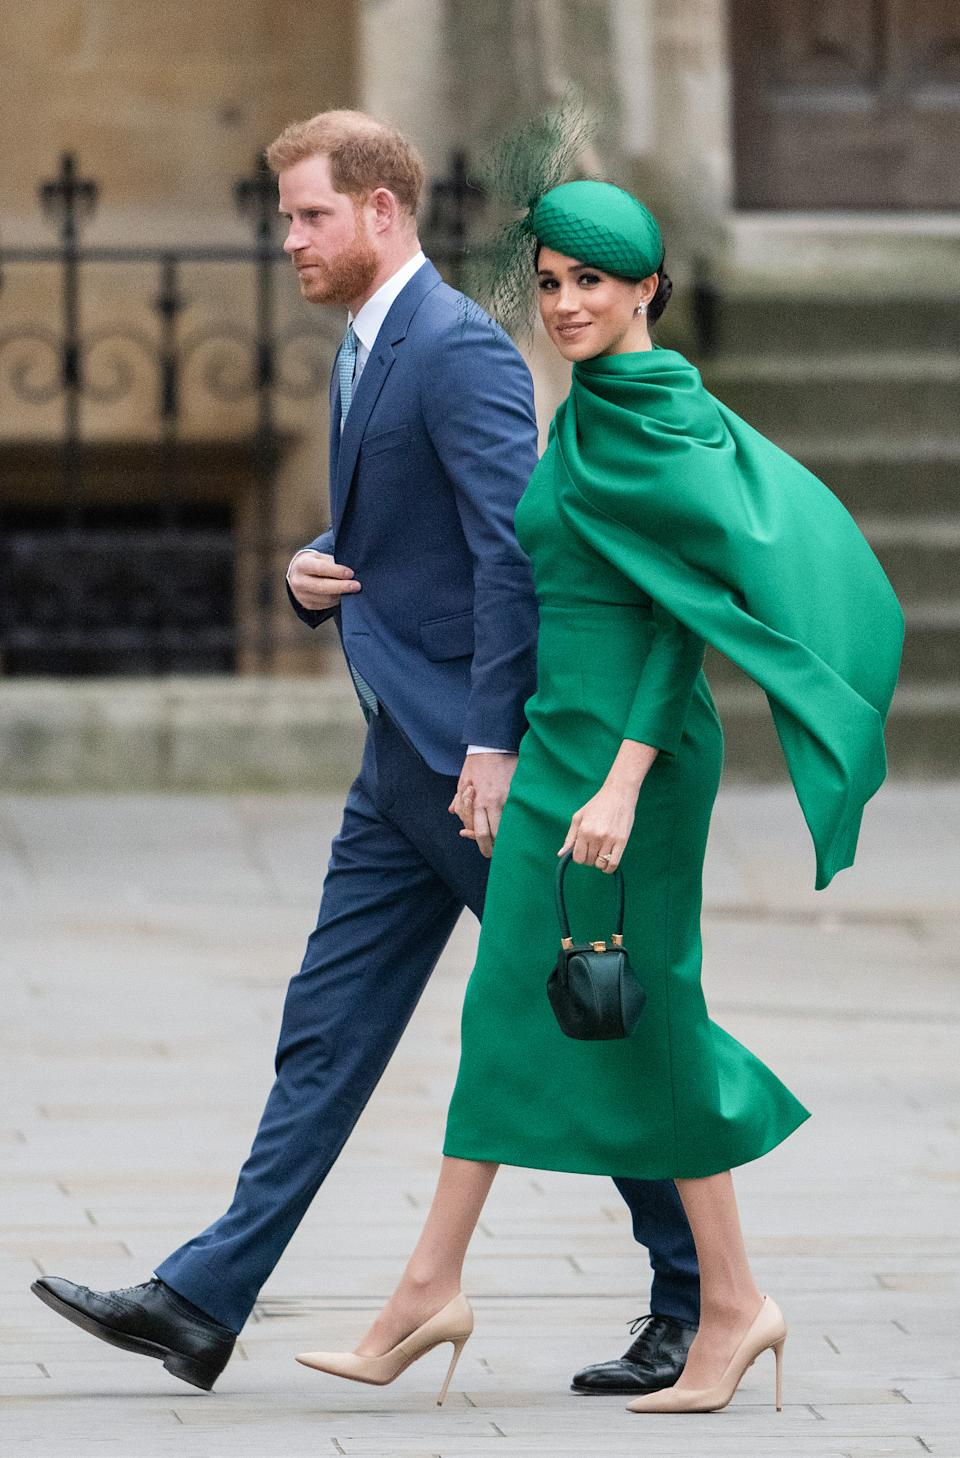 Prince Harry and Meghan Markle walk to event